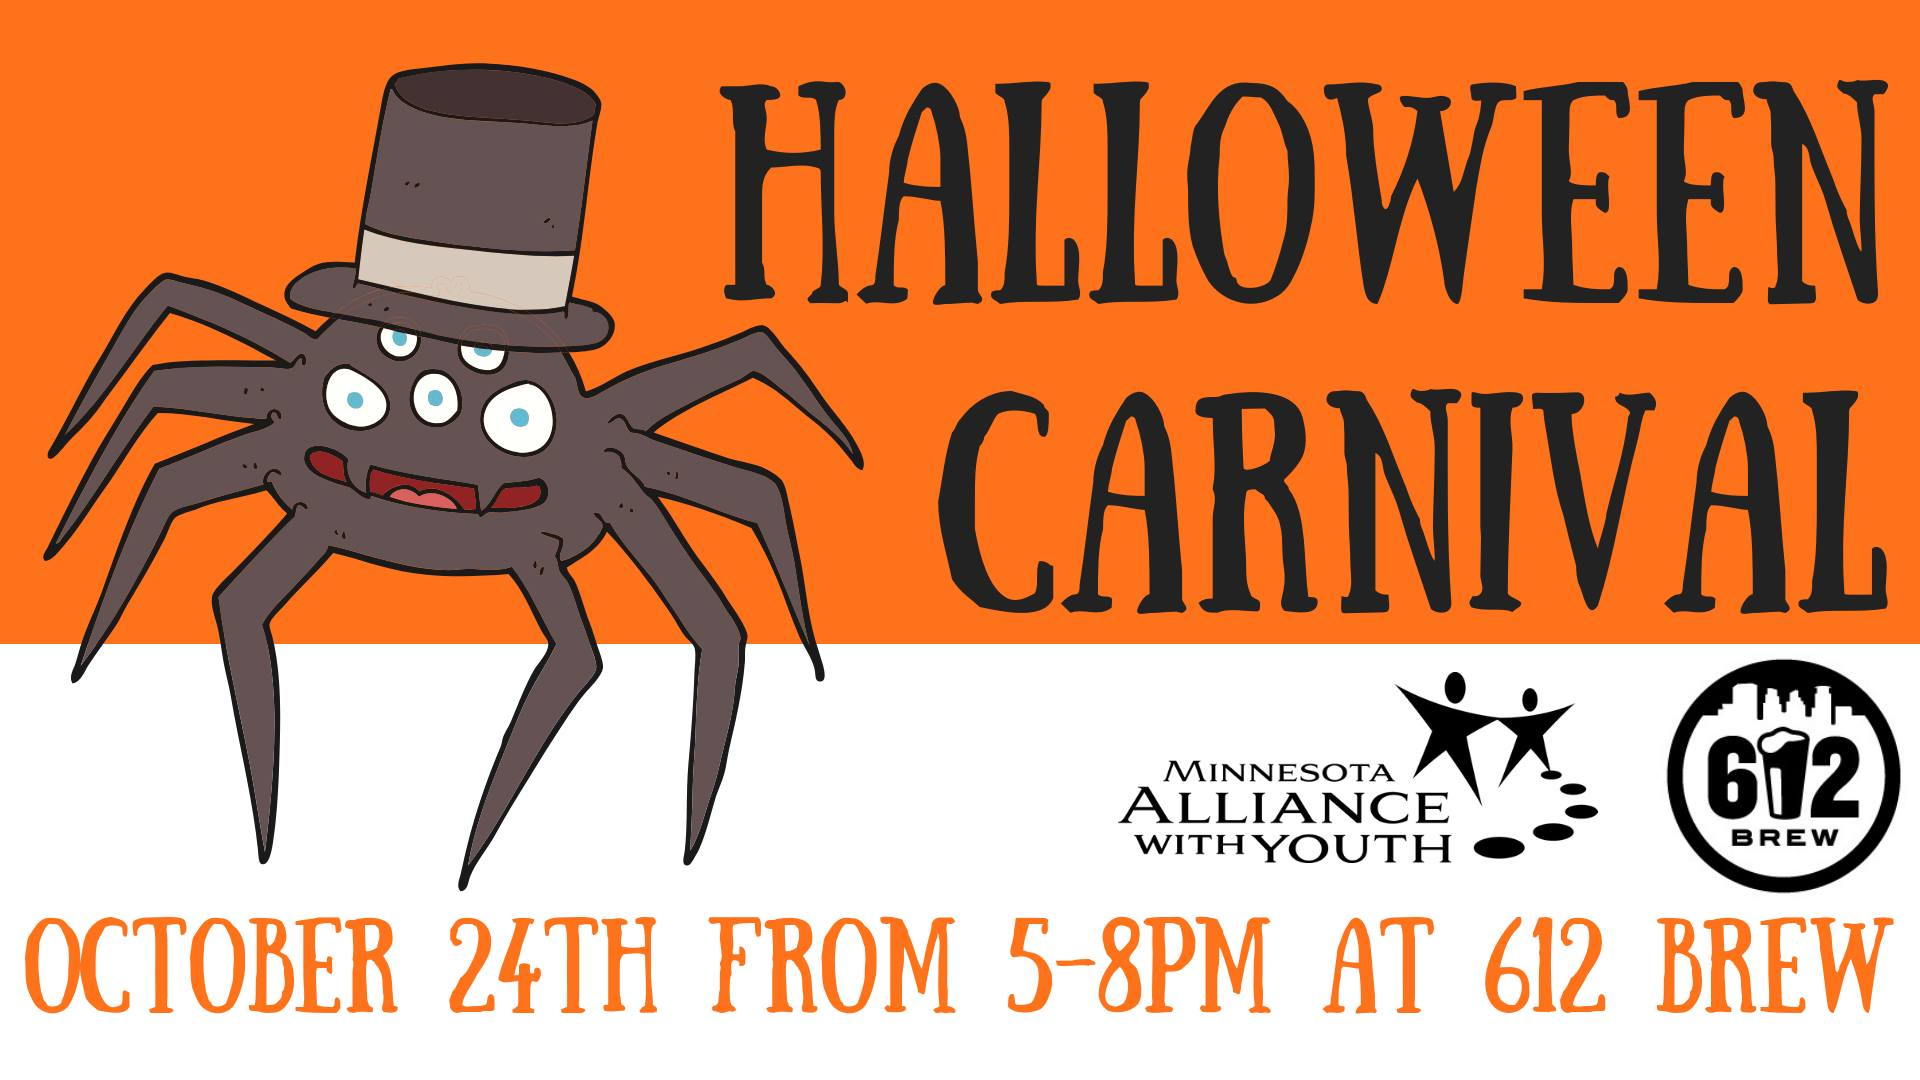 halloween carnival- a minnesota alliance with youth fundraiser